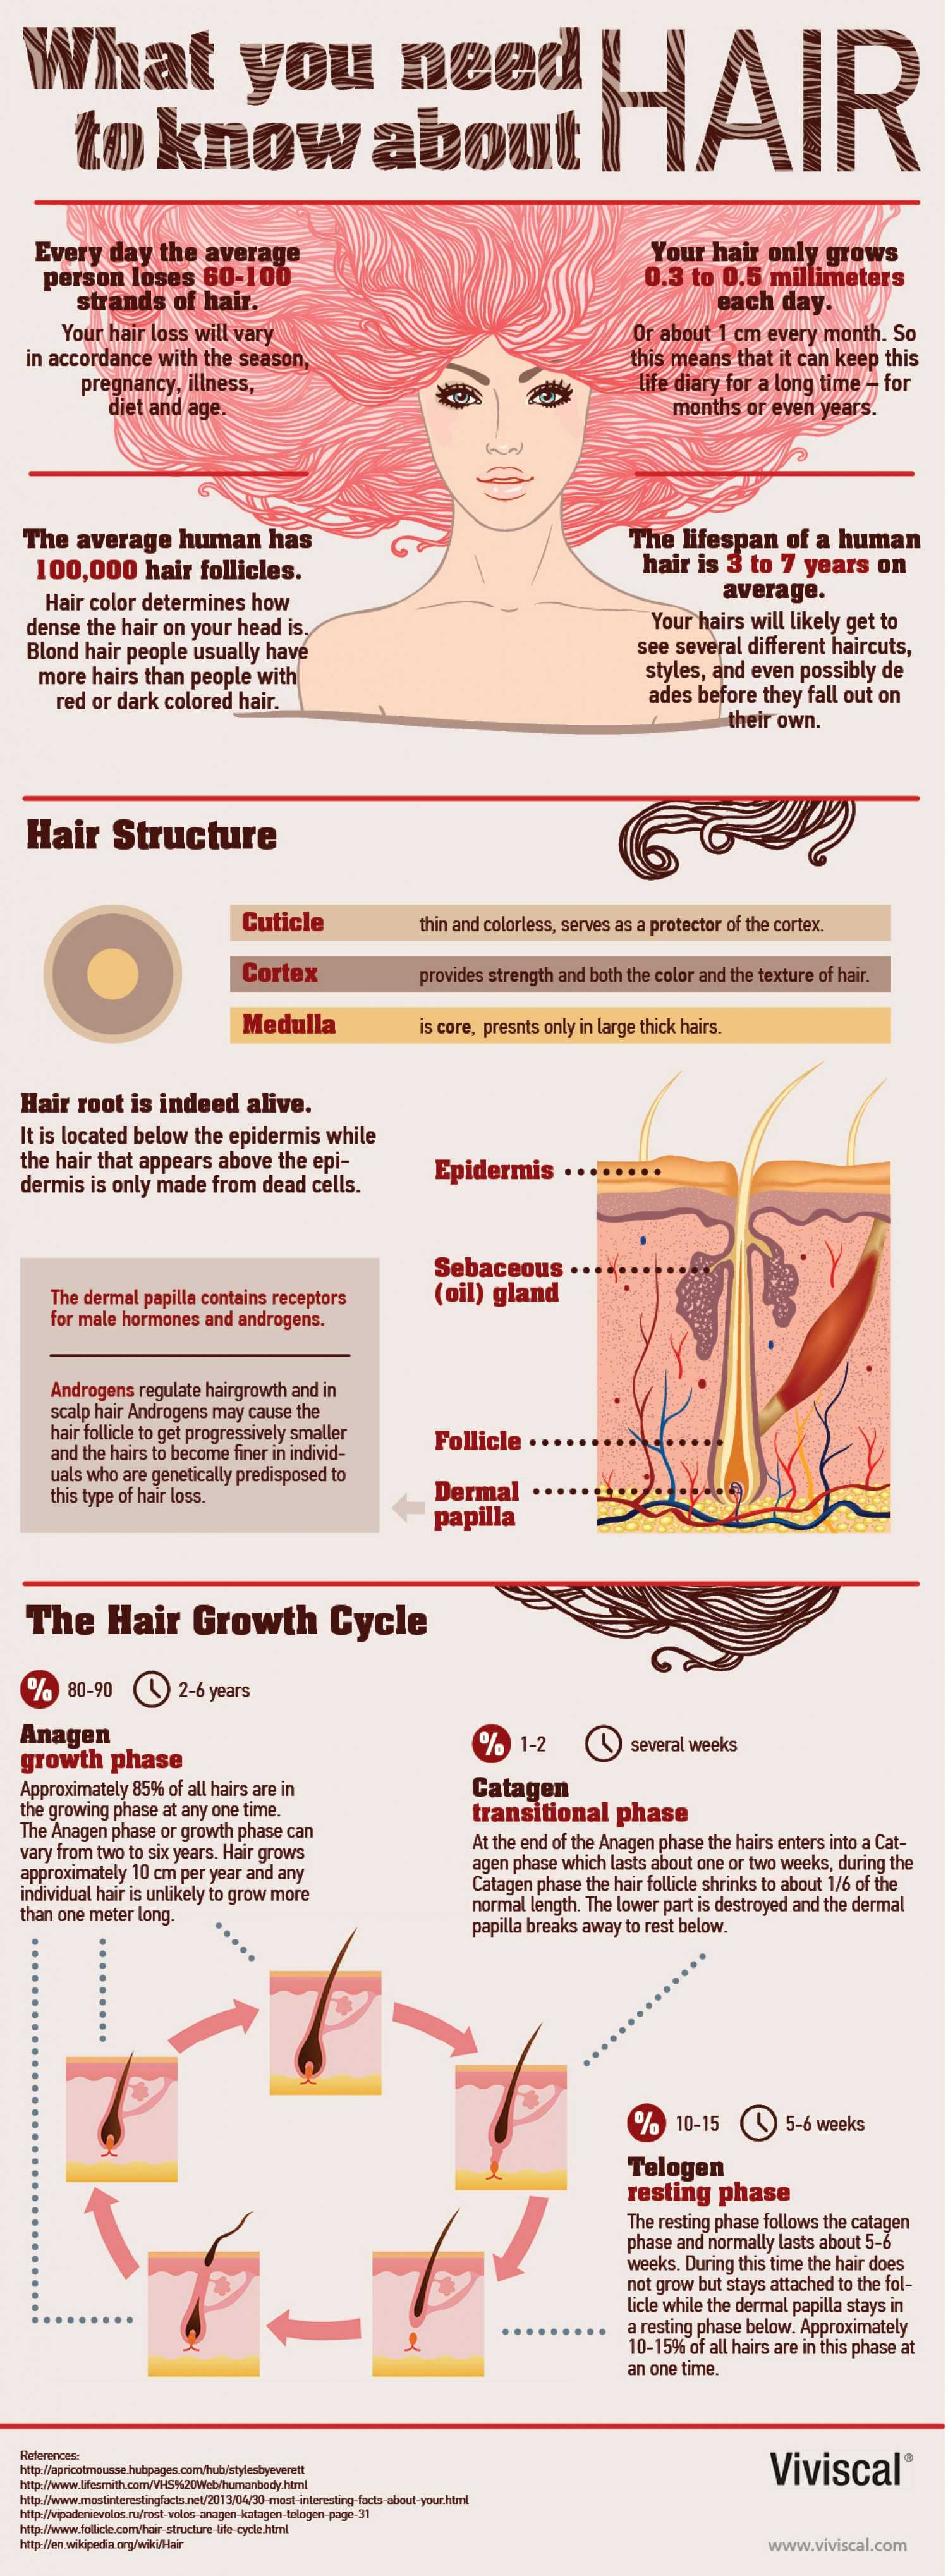 What You Need To Know About Hair